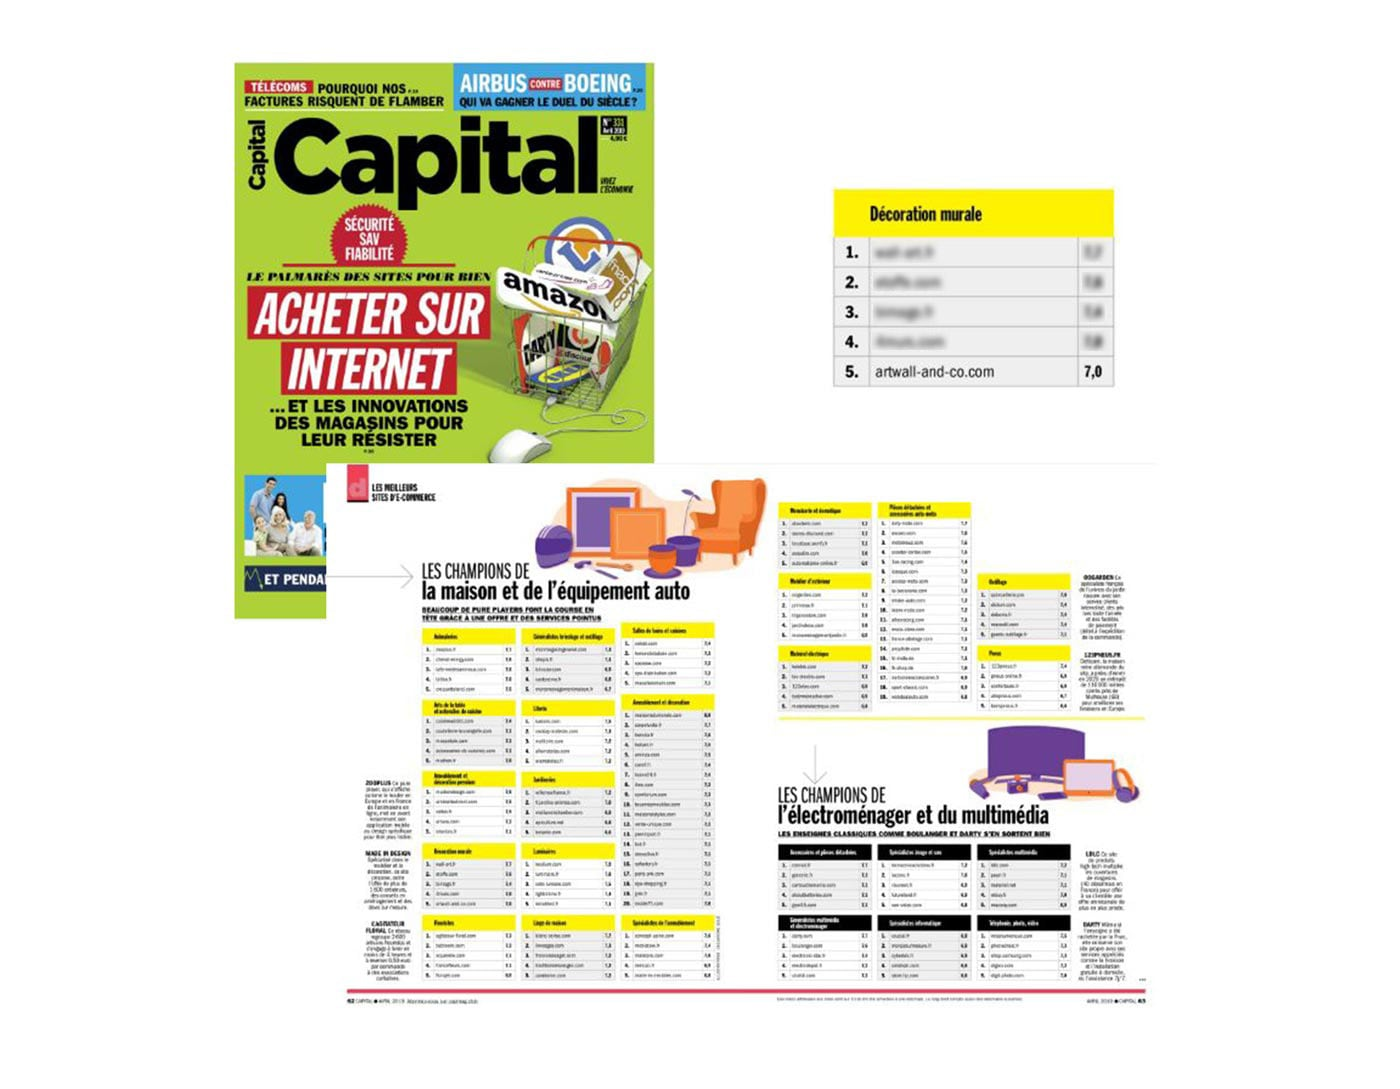 Artwall and co dans Capital Magazine